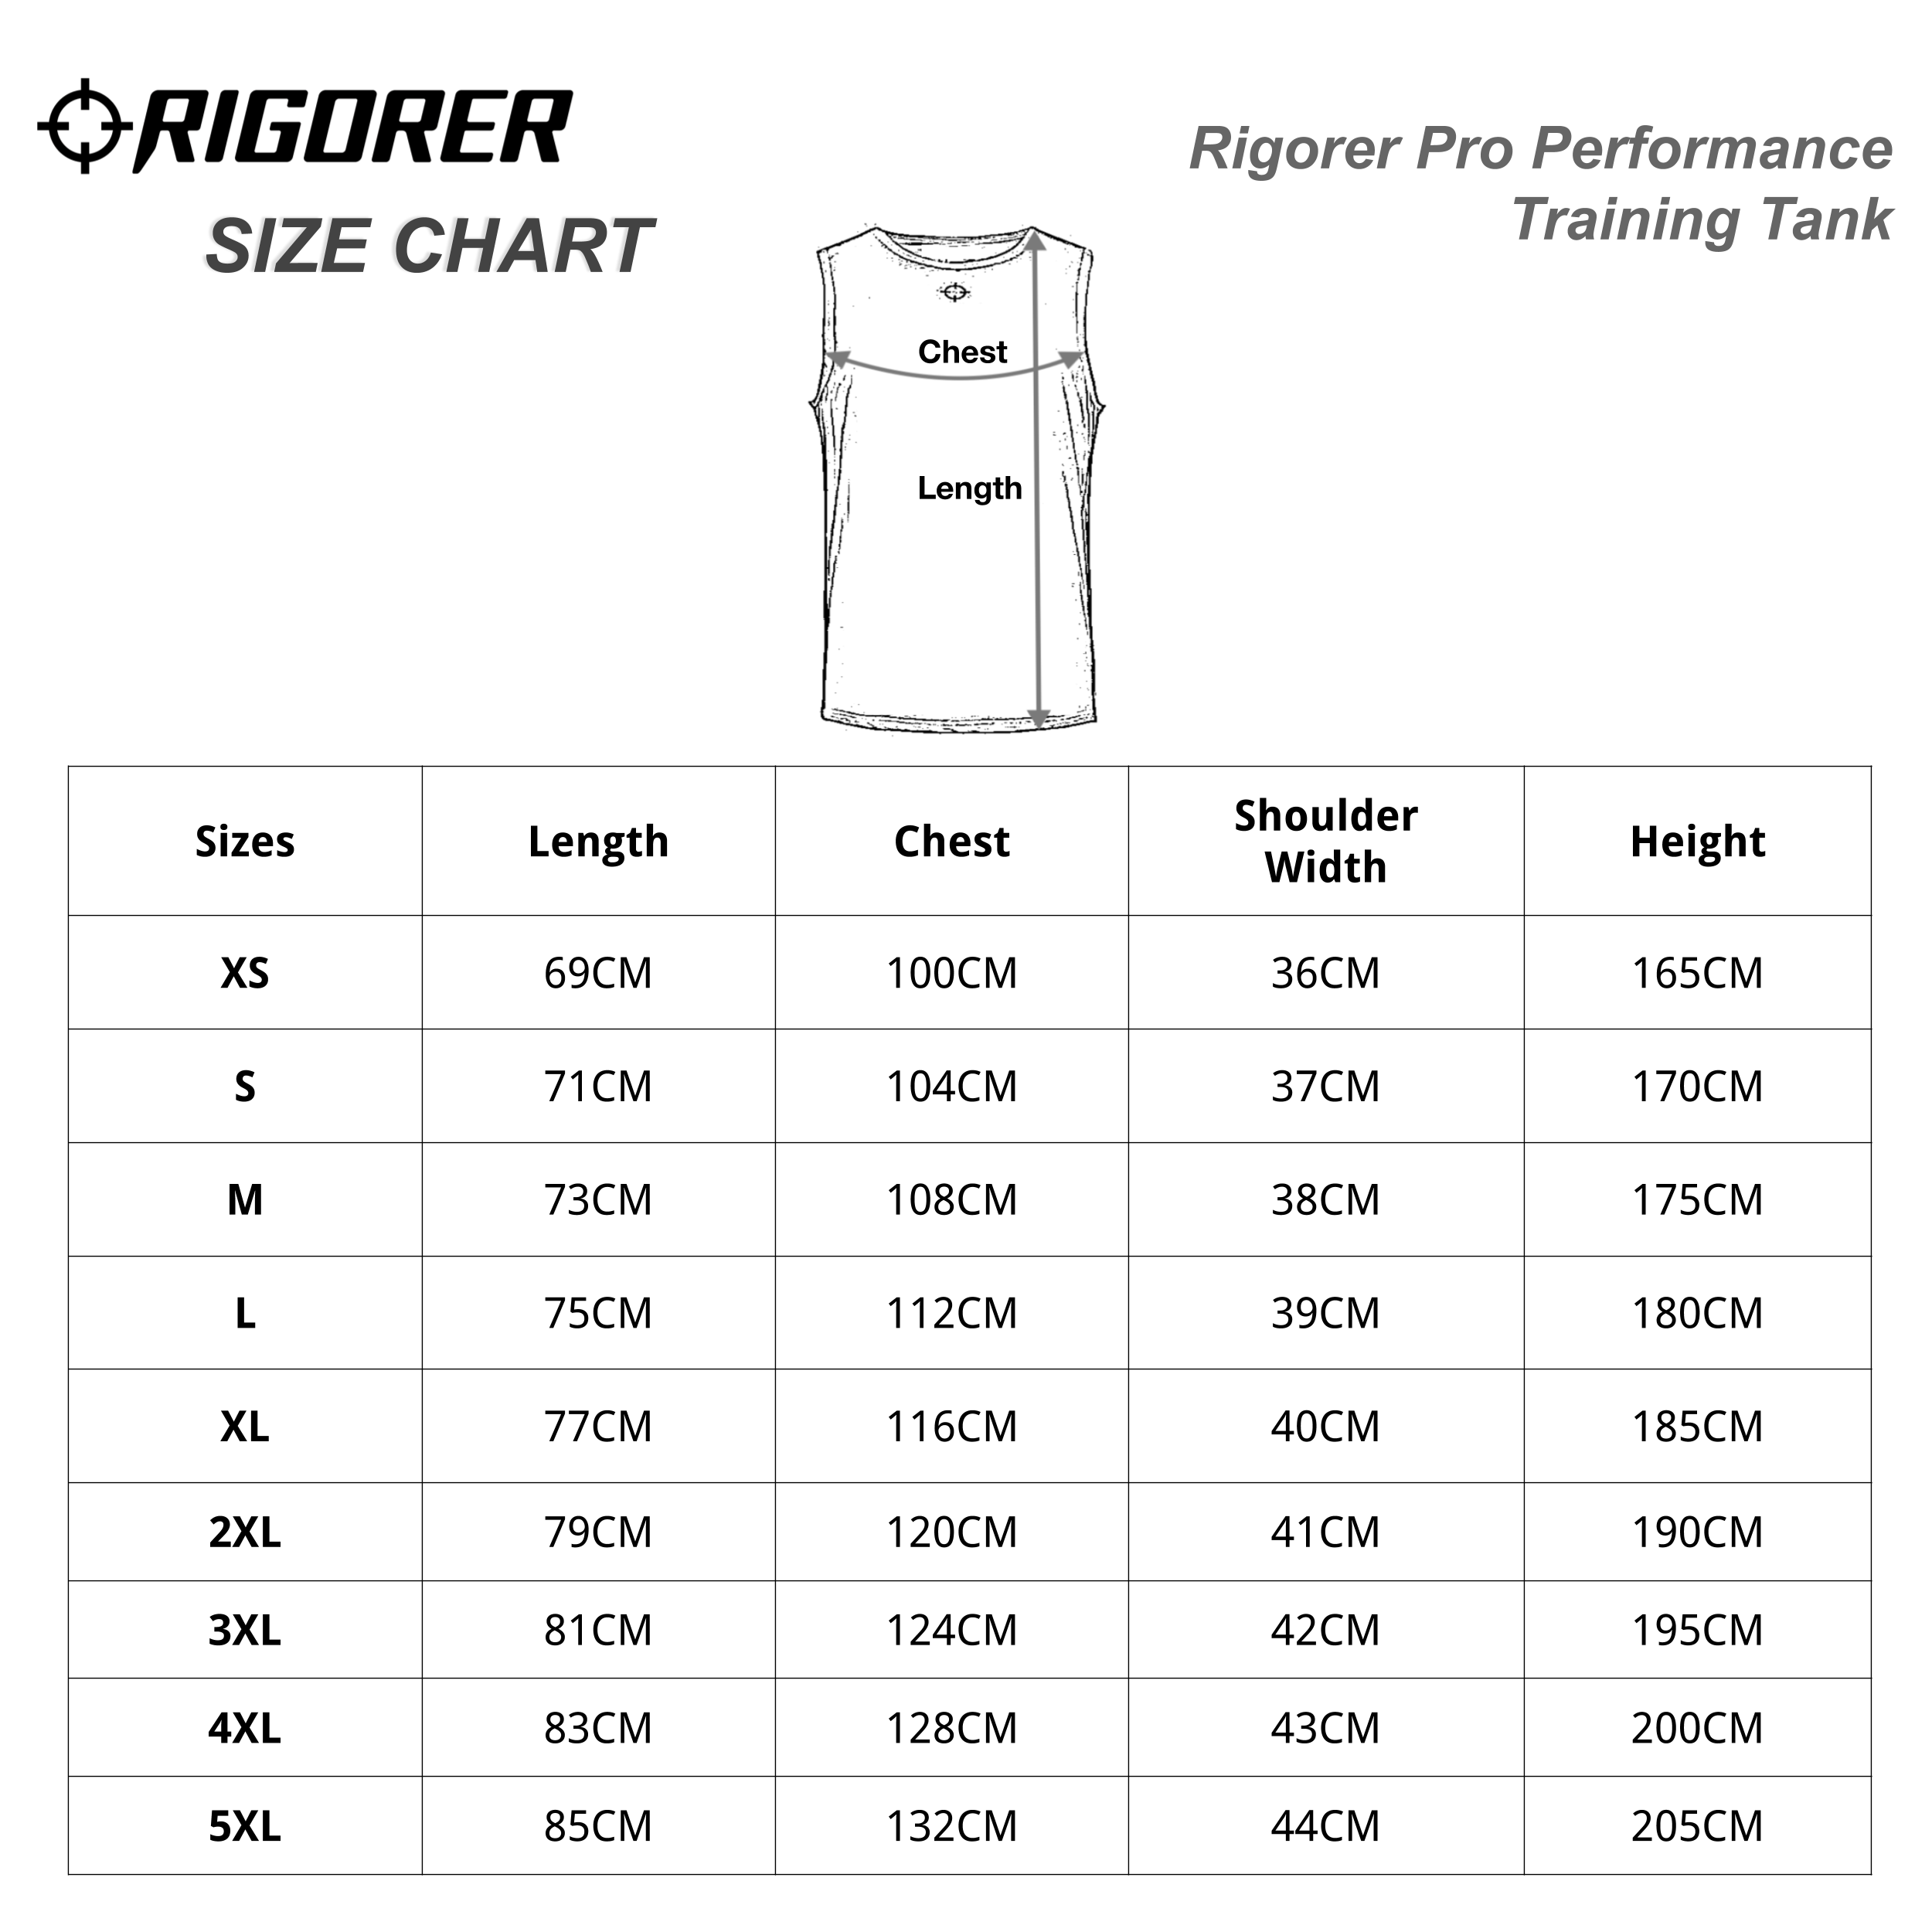 Rigorer Pro Performance Training Tank Sizing Chart